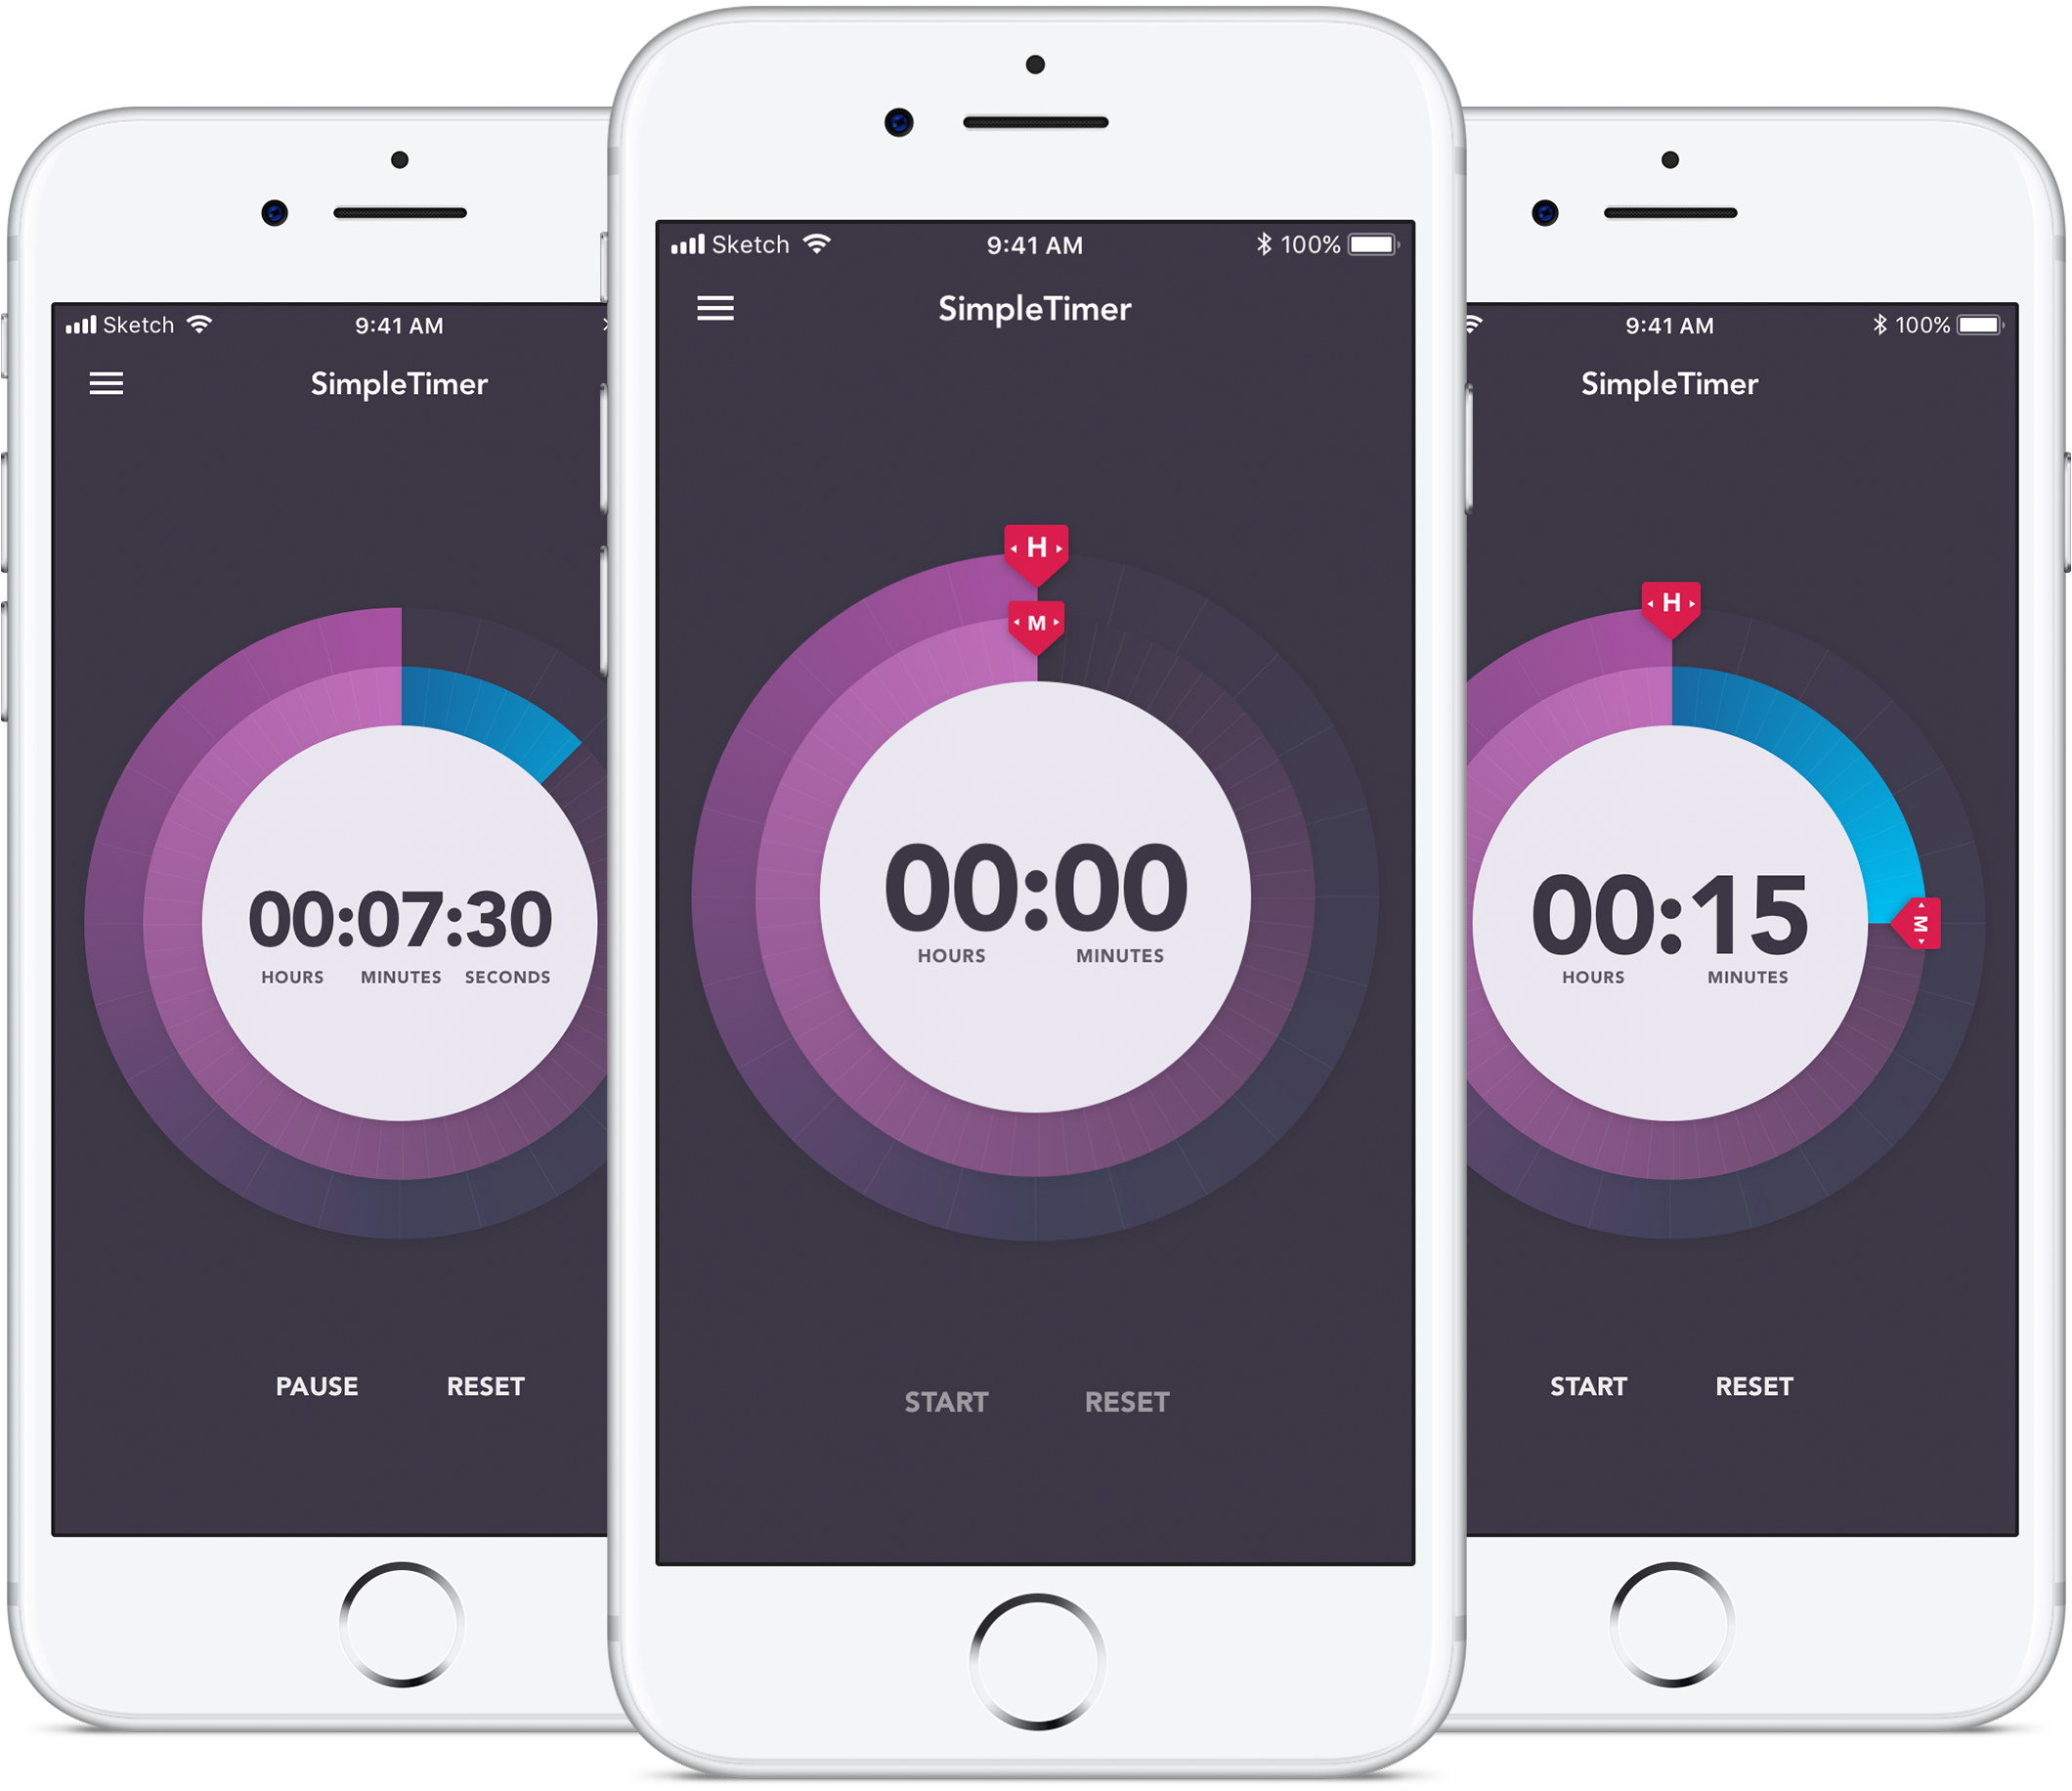 SimpleTimer iphone app featured